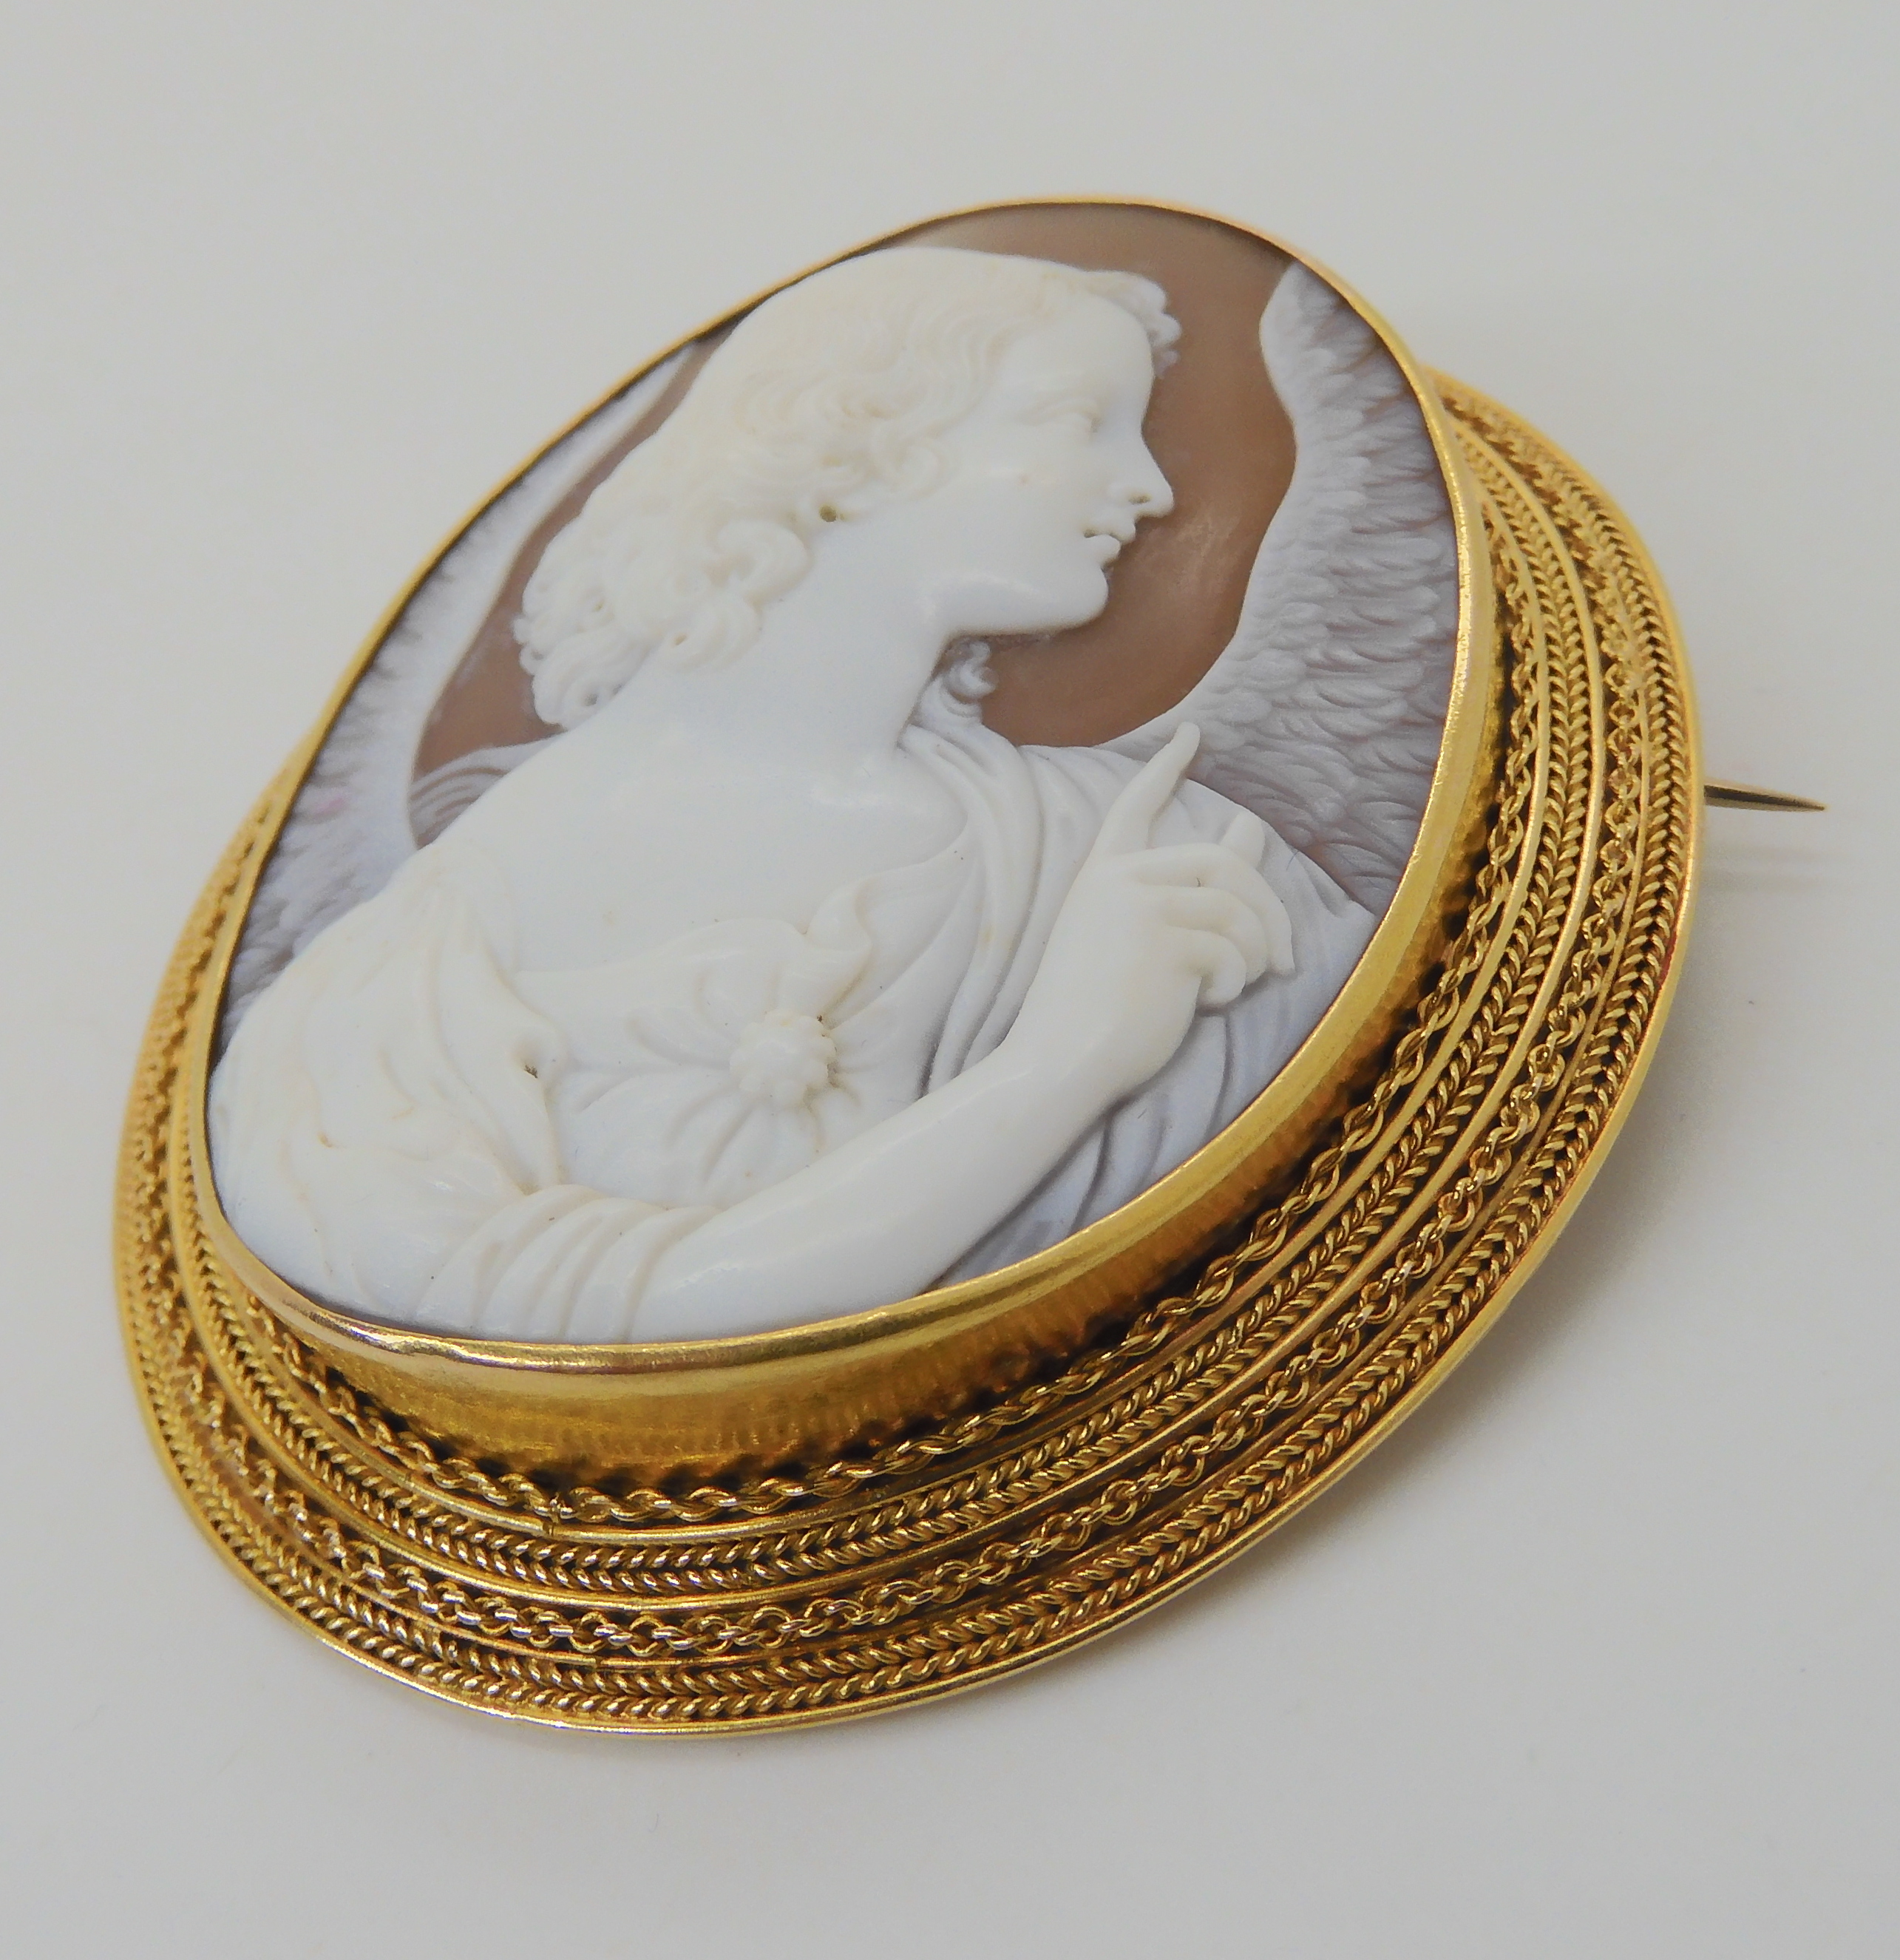 A LARGE FINE SHELL CAMEO OF AN ANGEL in a bright yellow metal rope wirework mount. Dimensions 6. - Image 2 of 6